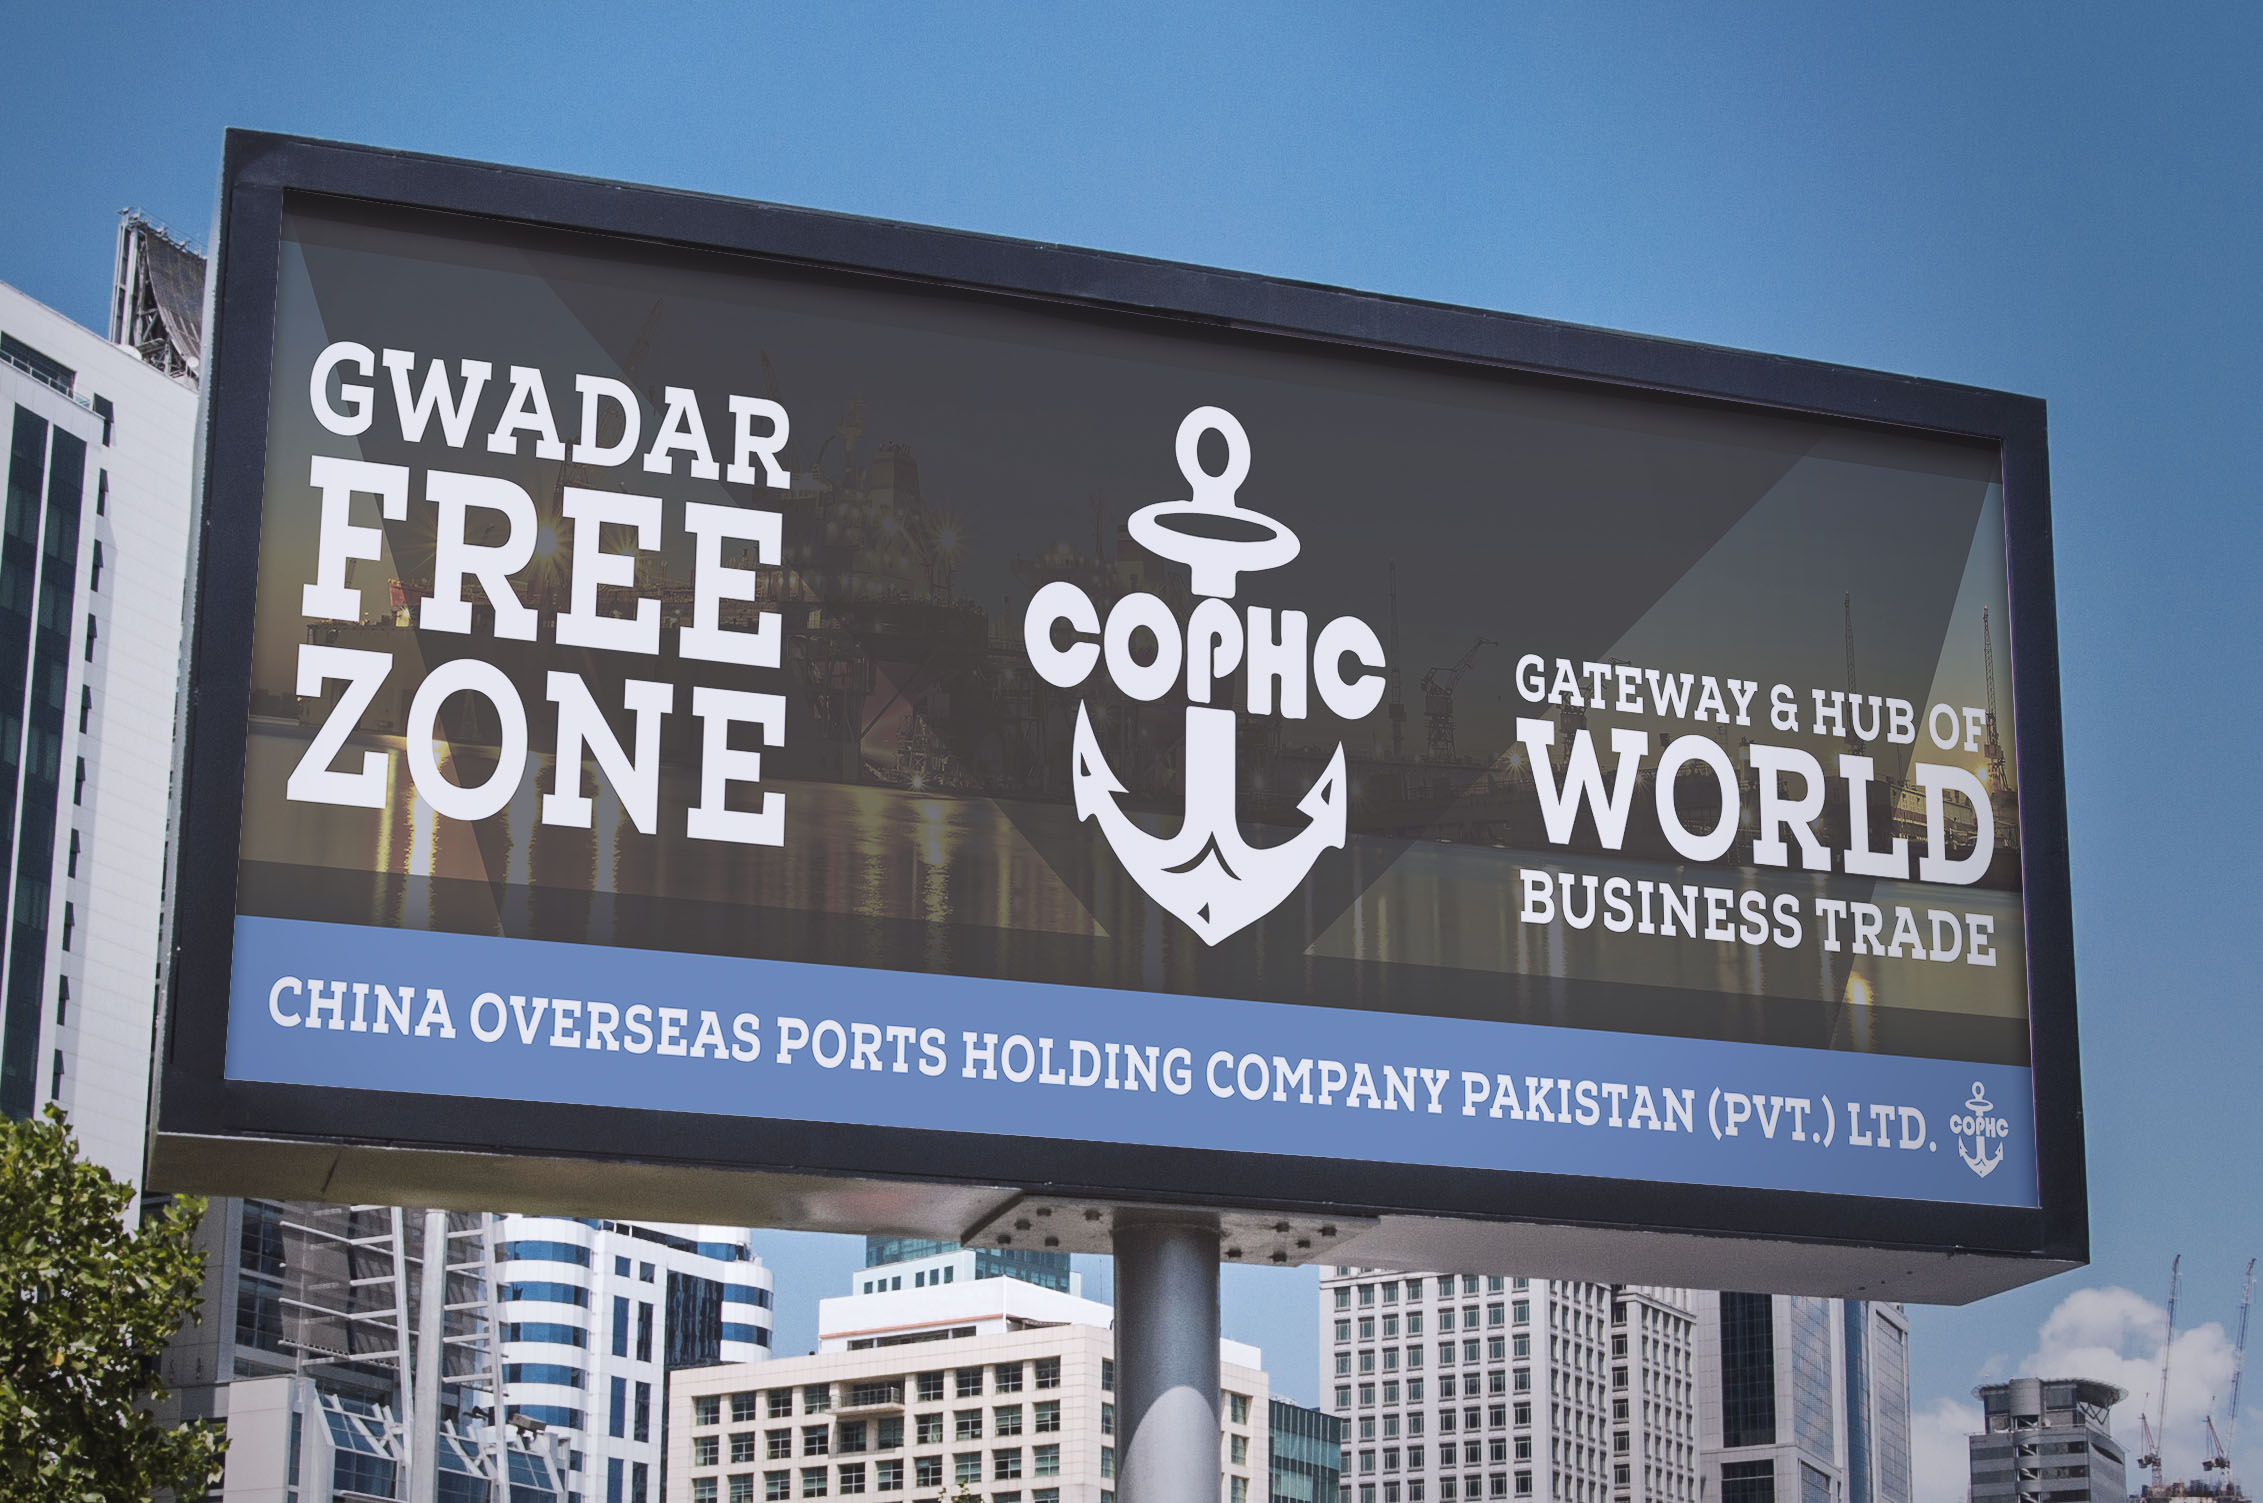 Gwadar free zone Billboard